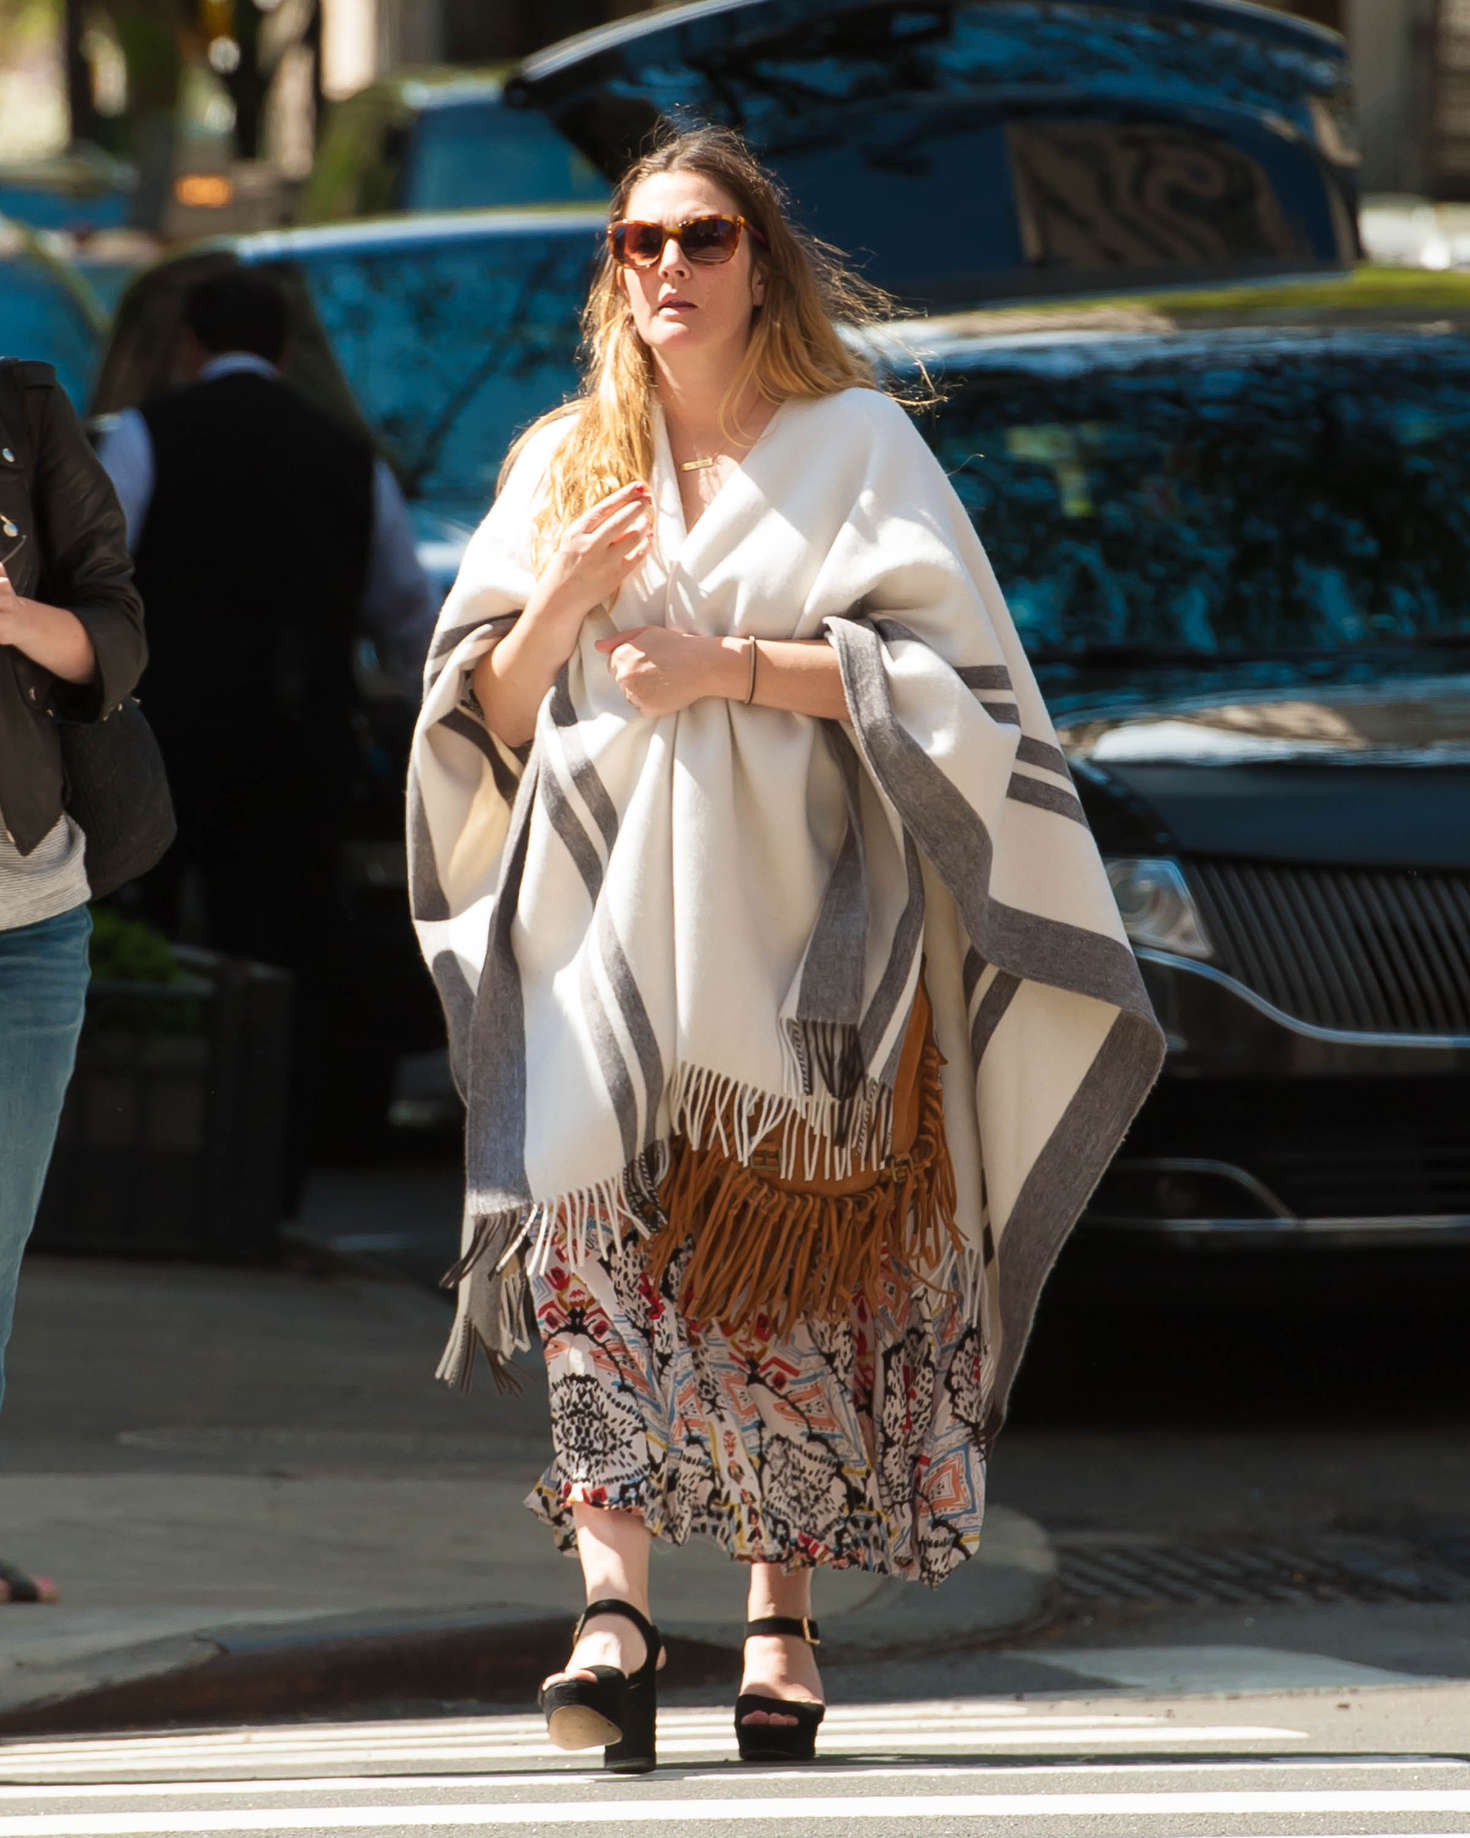 Drew Barrymore out and about in New York